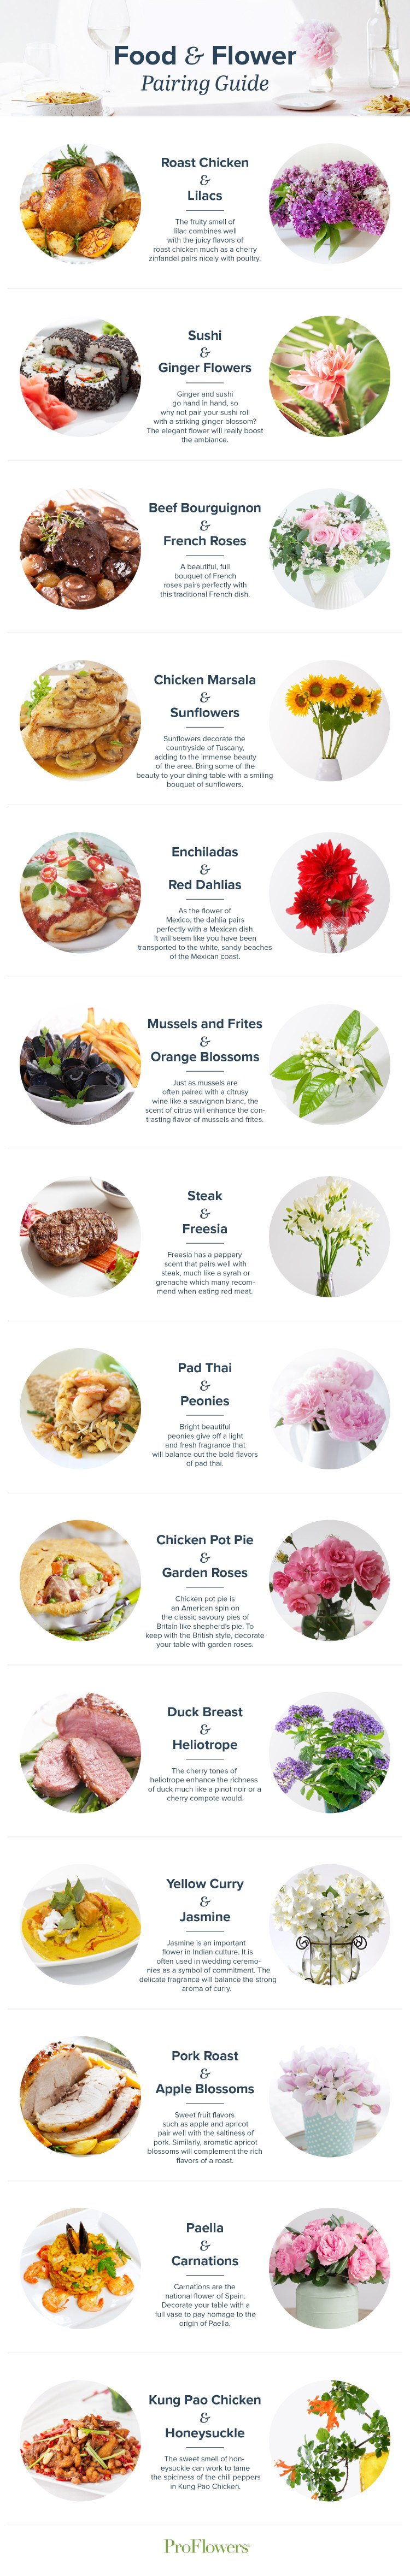 Food and Flower Pairing Guide